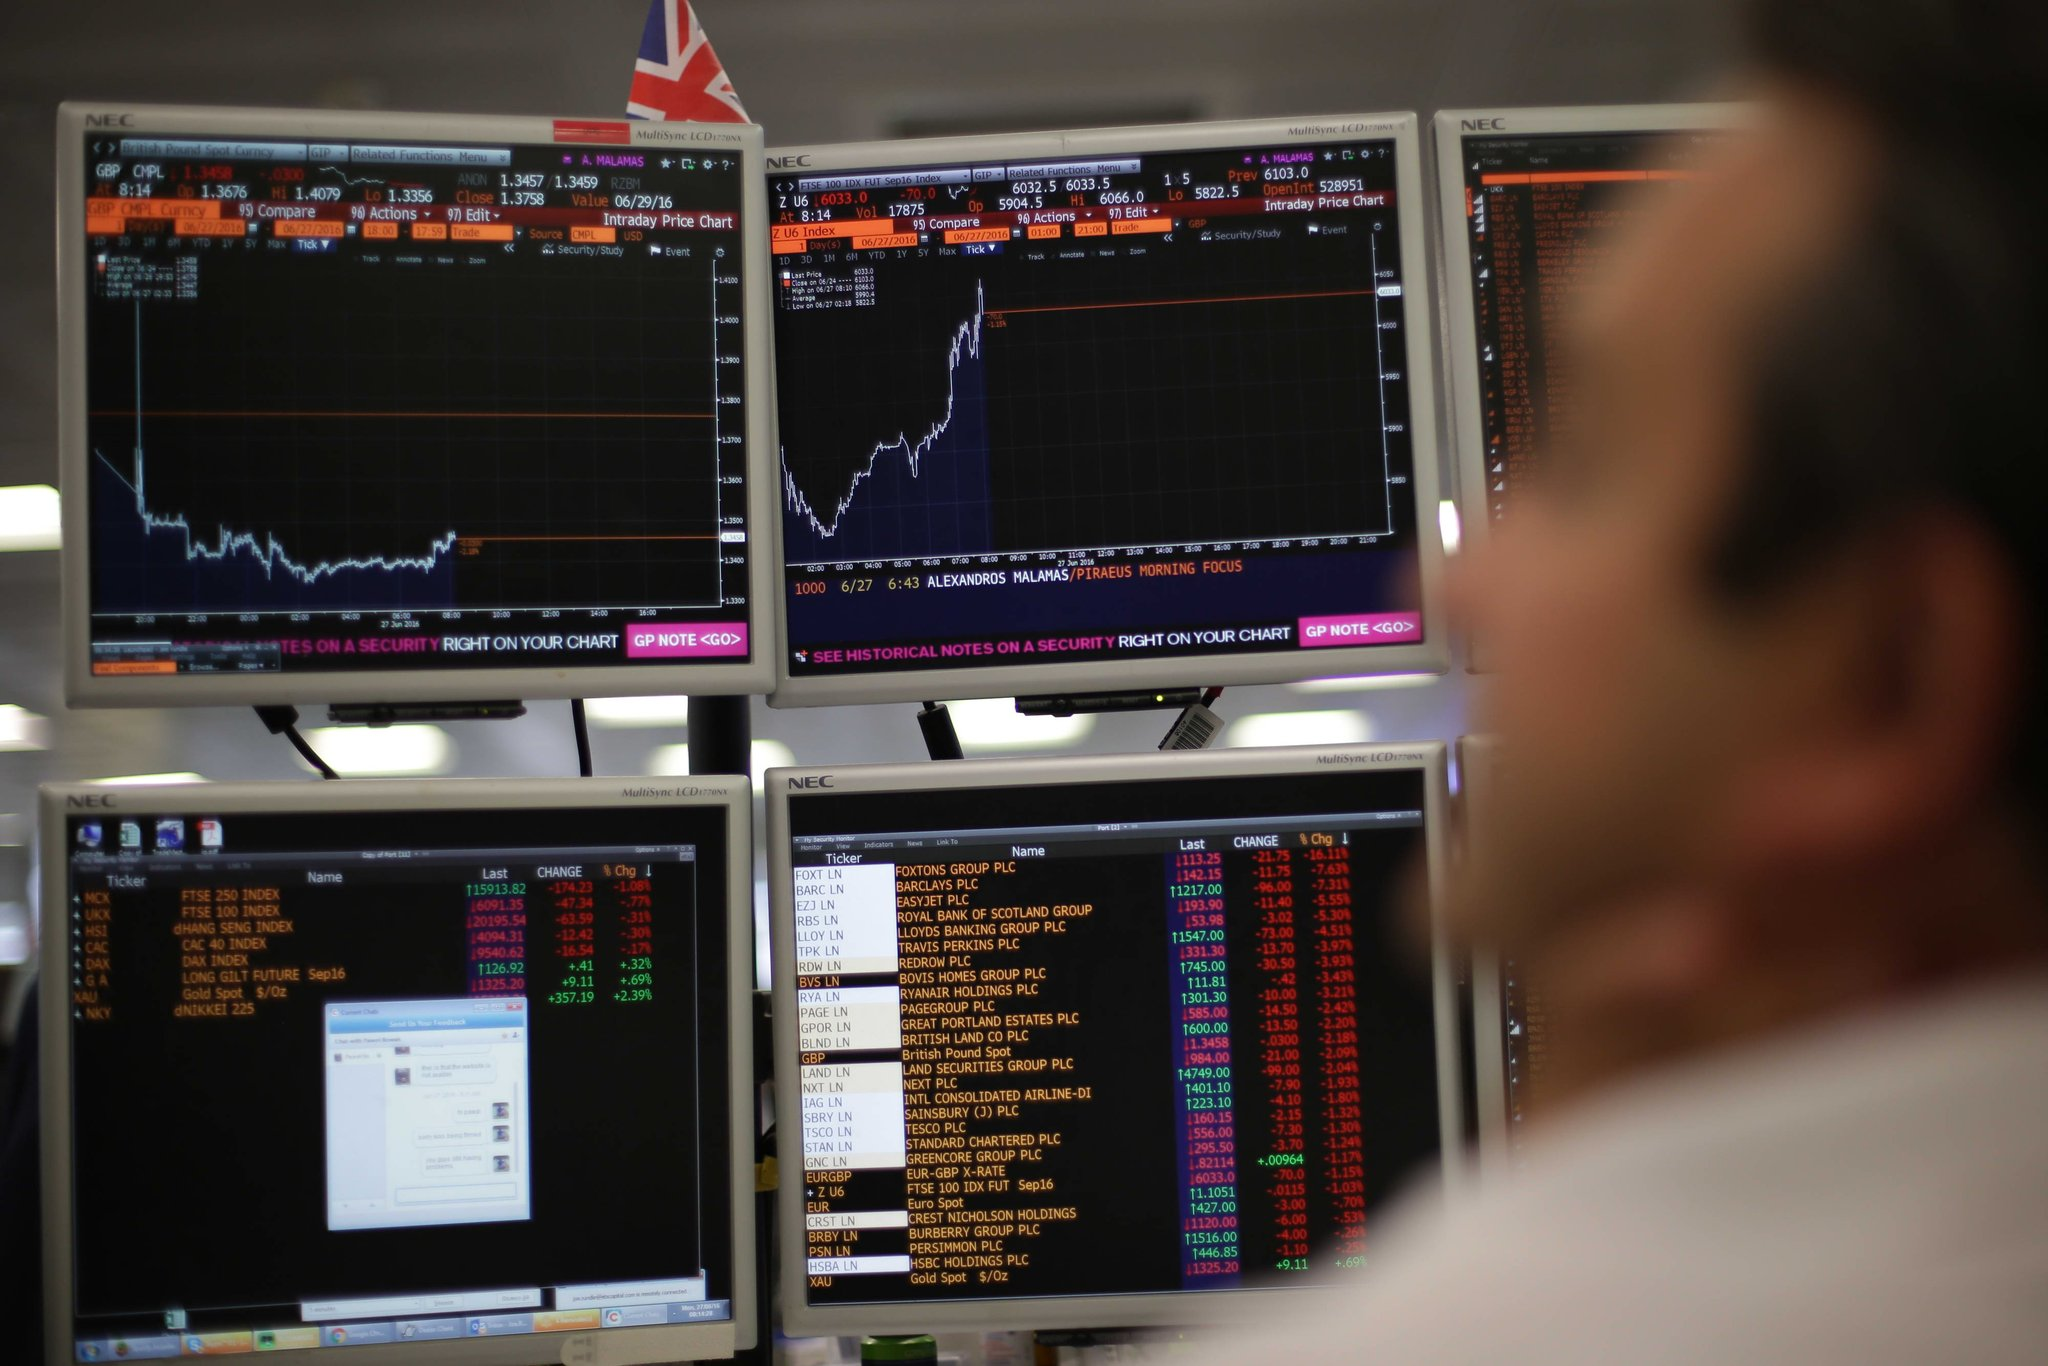 European markets set for flat open as China data prompts global growth concerns